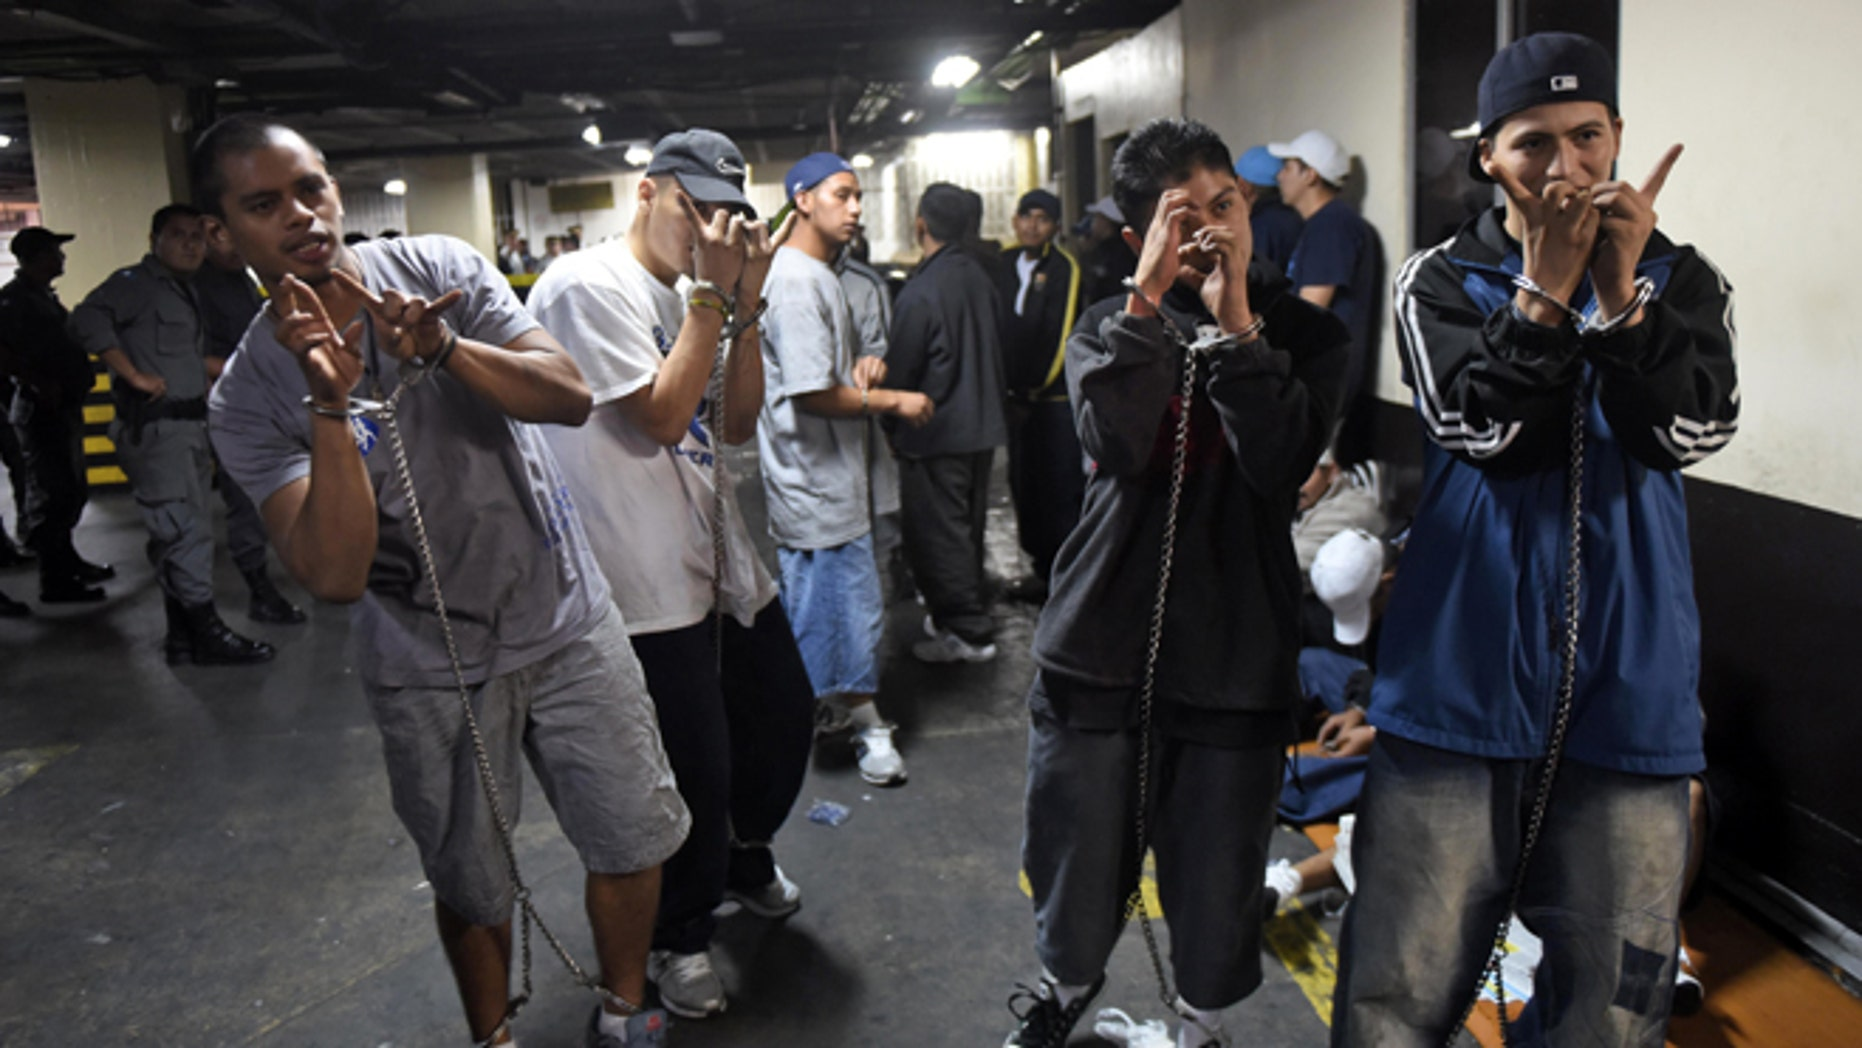 """Members of the """"Mara Salvatrucha"""" gang gesture whilst kept in restraints in court. (Photo credit should read JOHAN ORDONEZ/AFP/Getty Images)"""